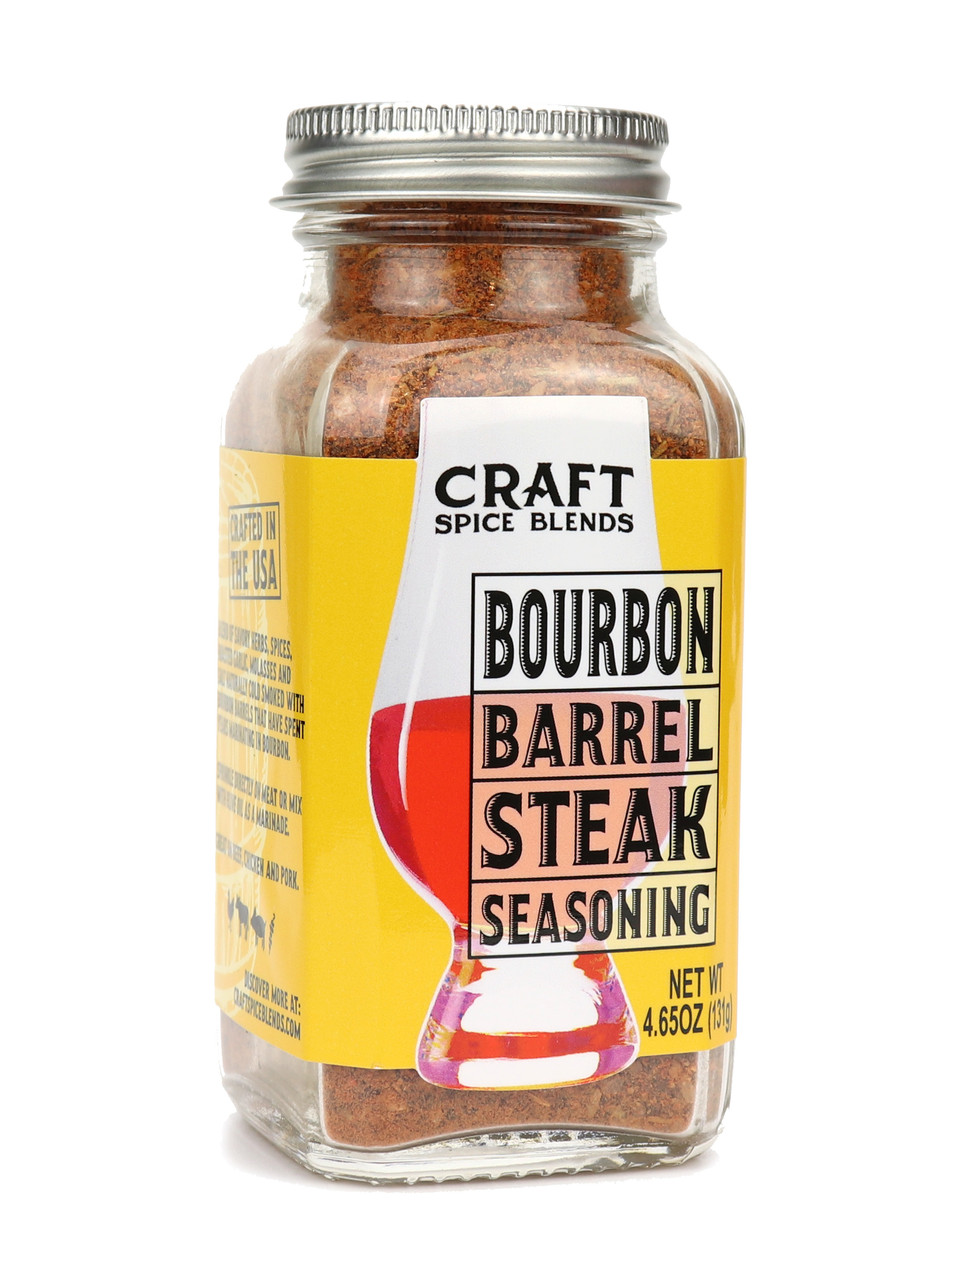 Bourbon Barrel Steak Seasoning.jpg